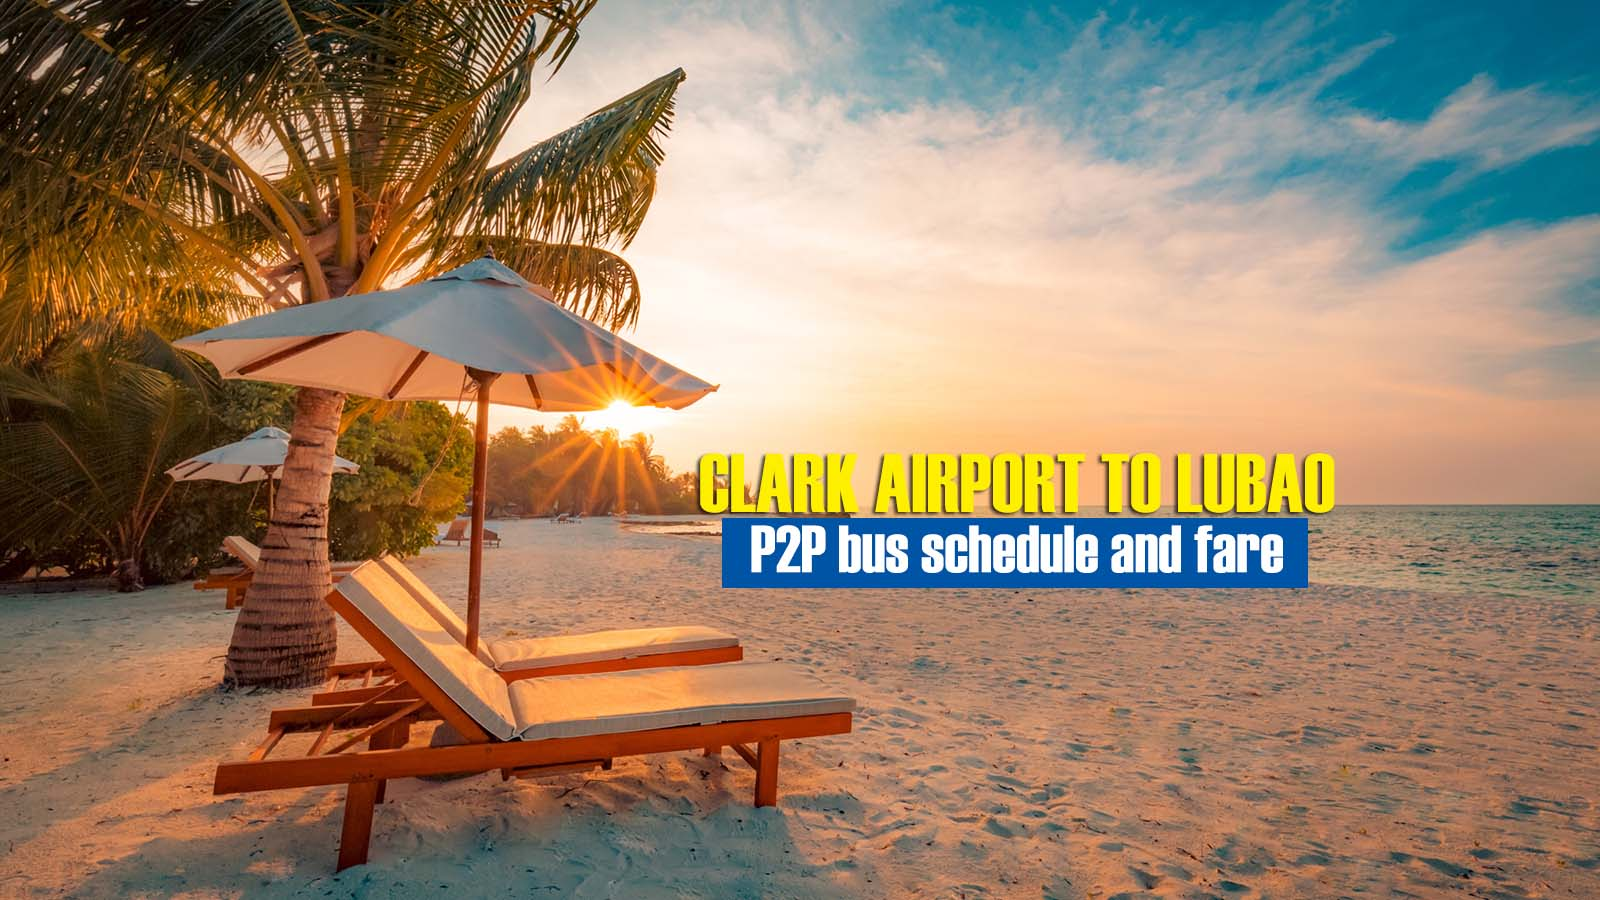 Clark Airport to Lubao: 2020 P2P Bus Schedule and Fare